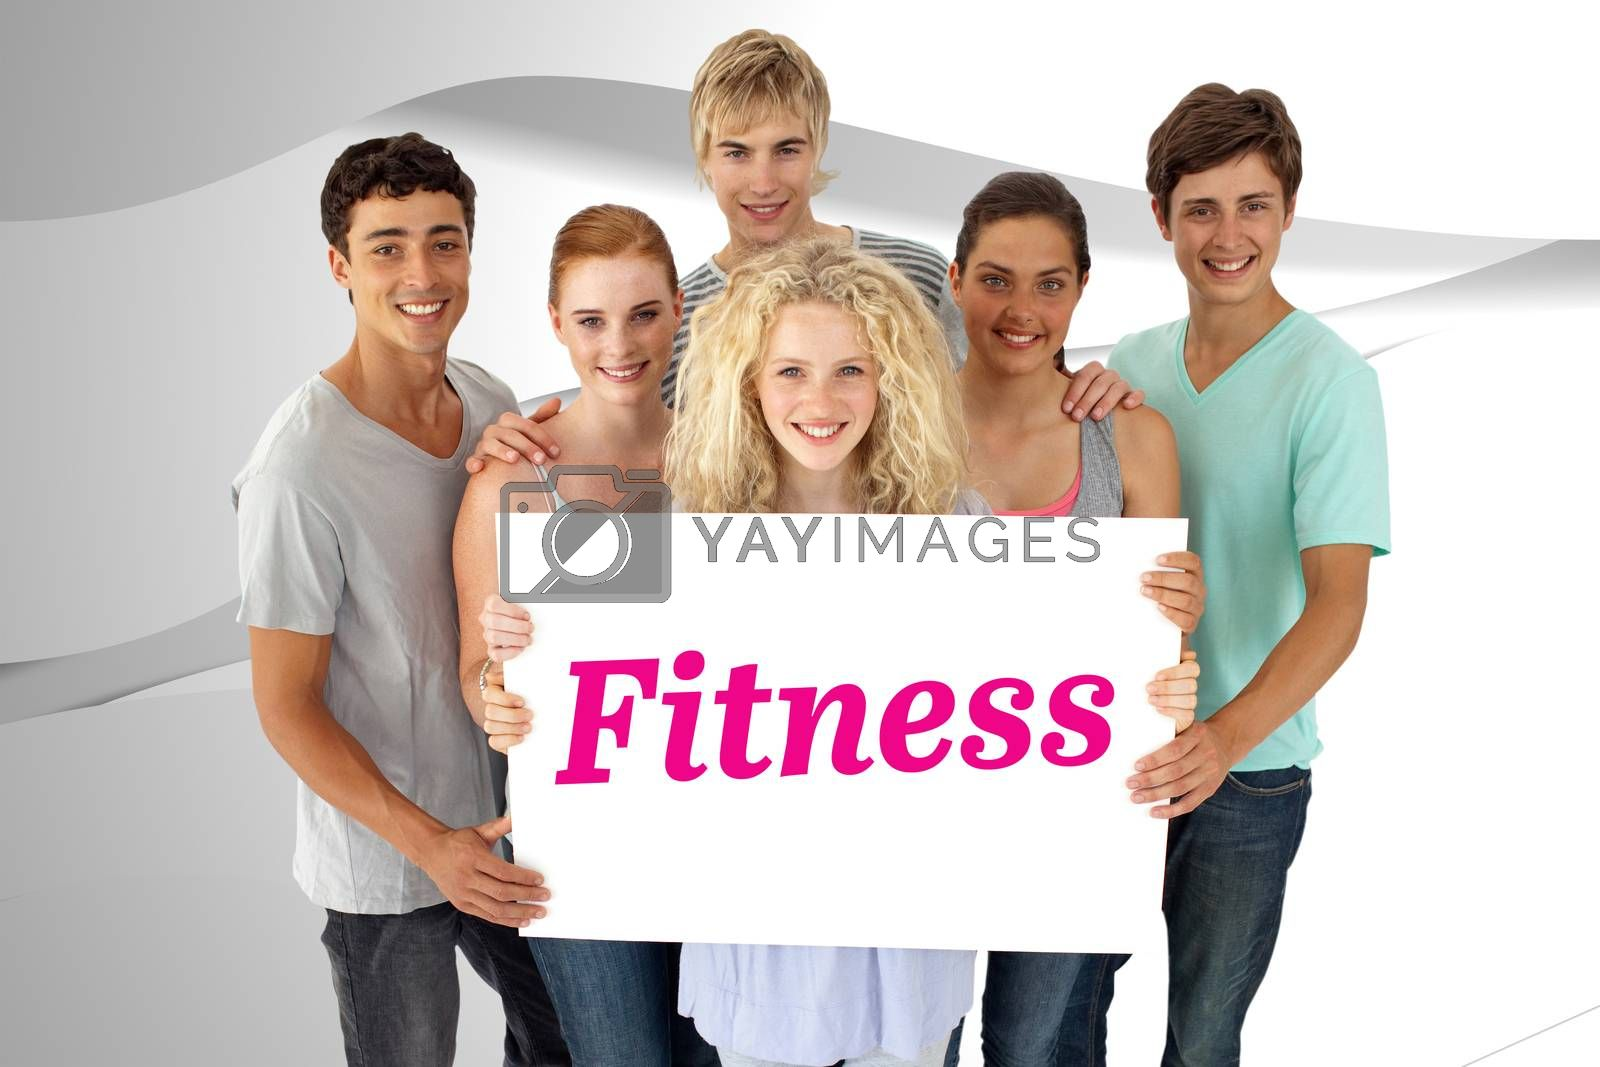 The word fitness and group of teenagers holding a blank card against white wave design